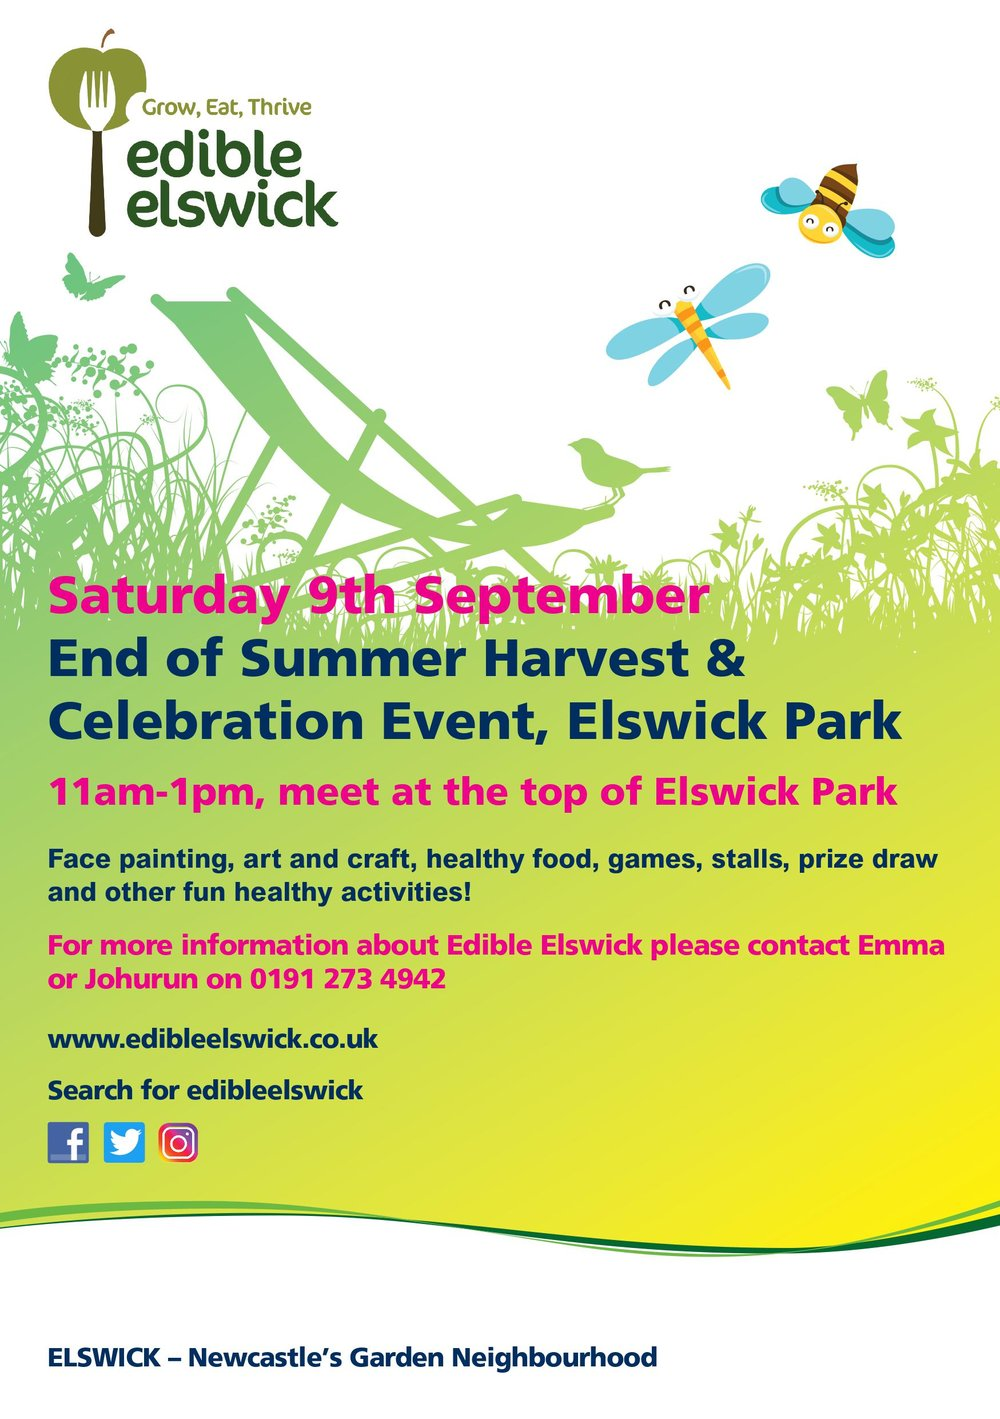 Edible Elswick Sept Event Flyer 2017 AW.jpg